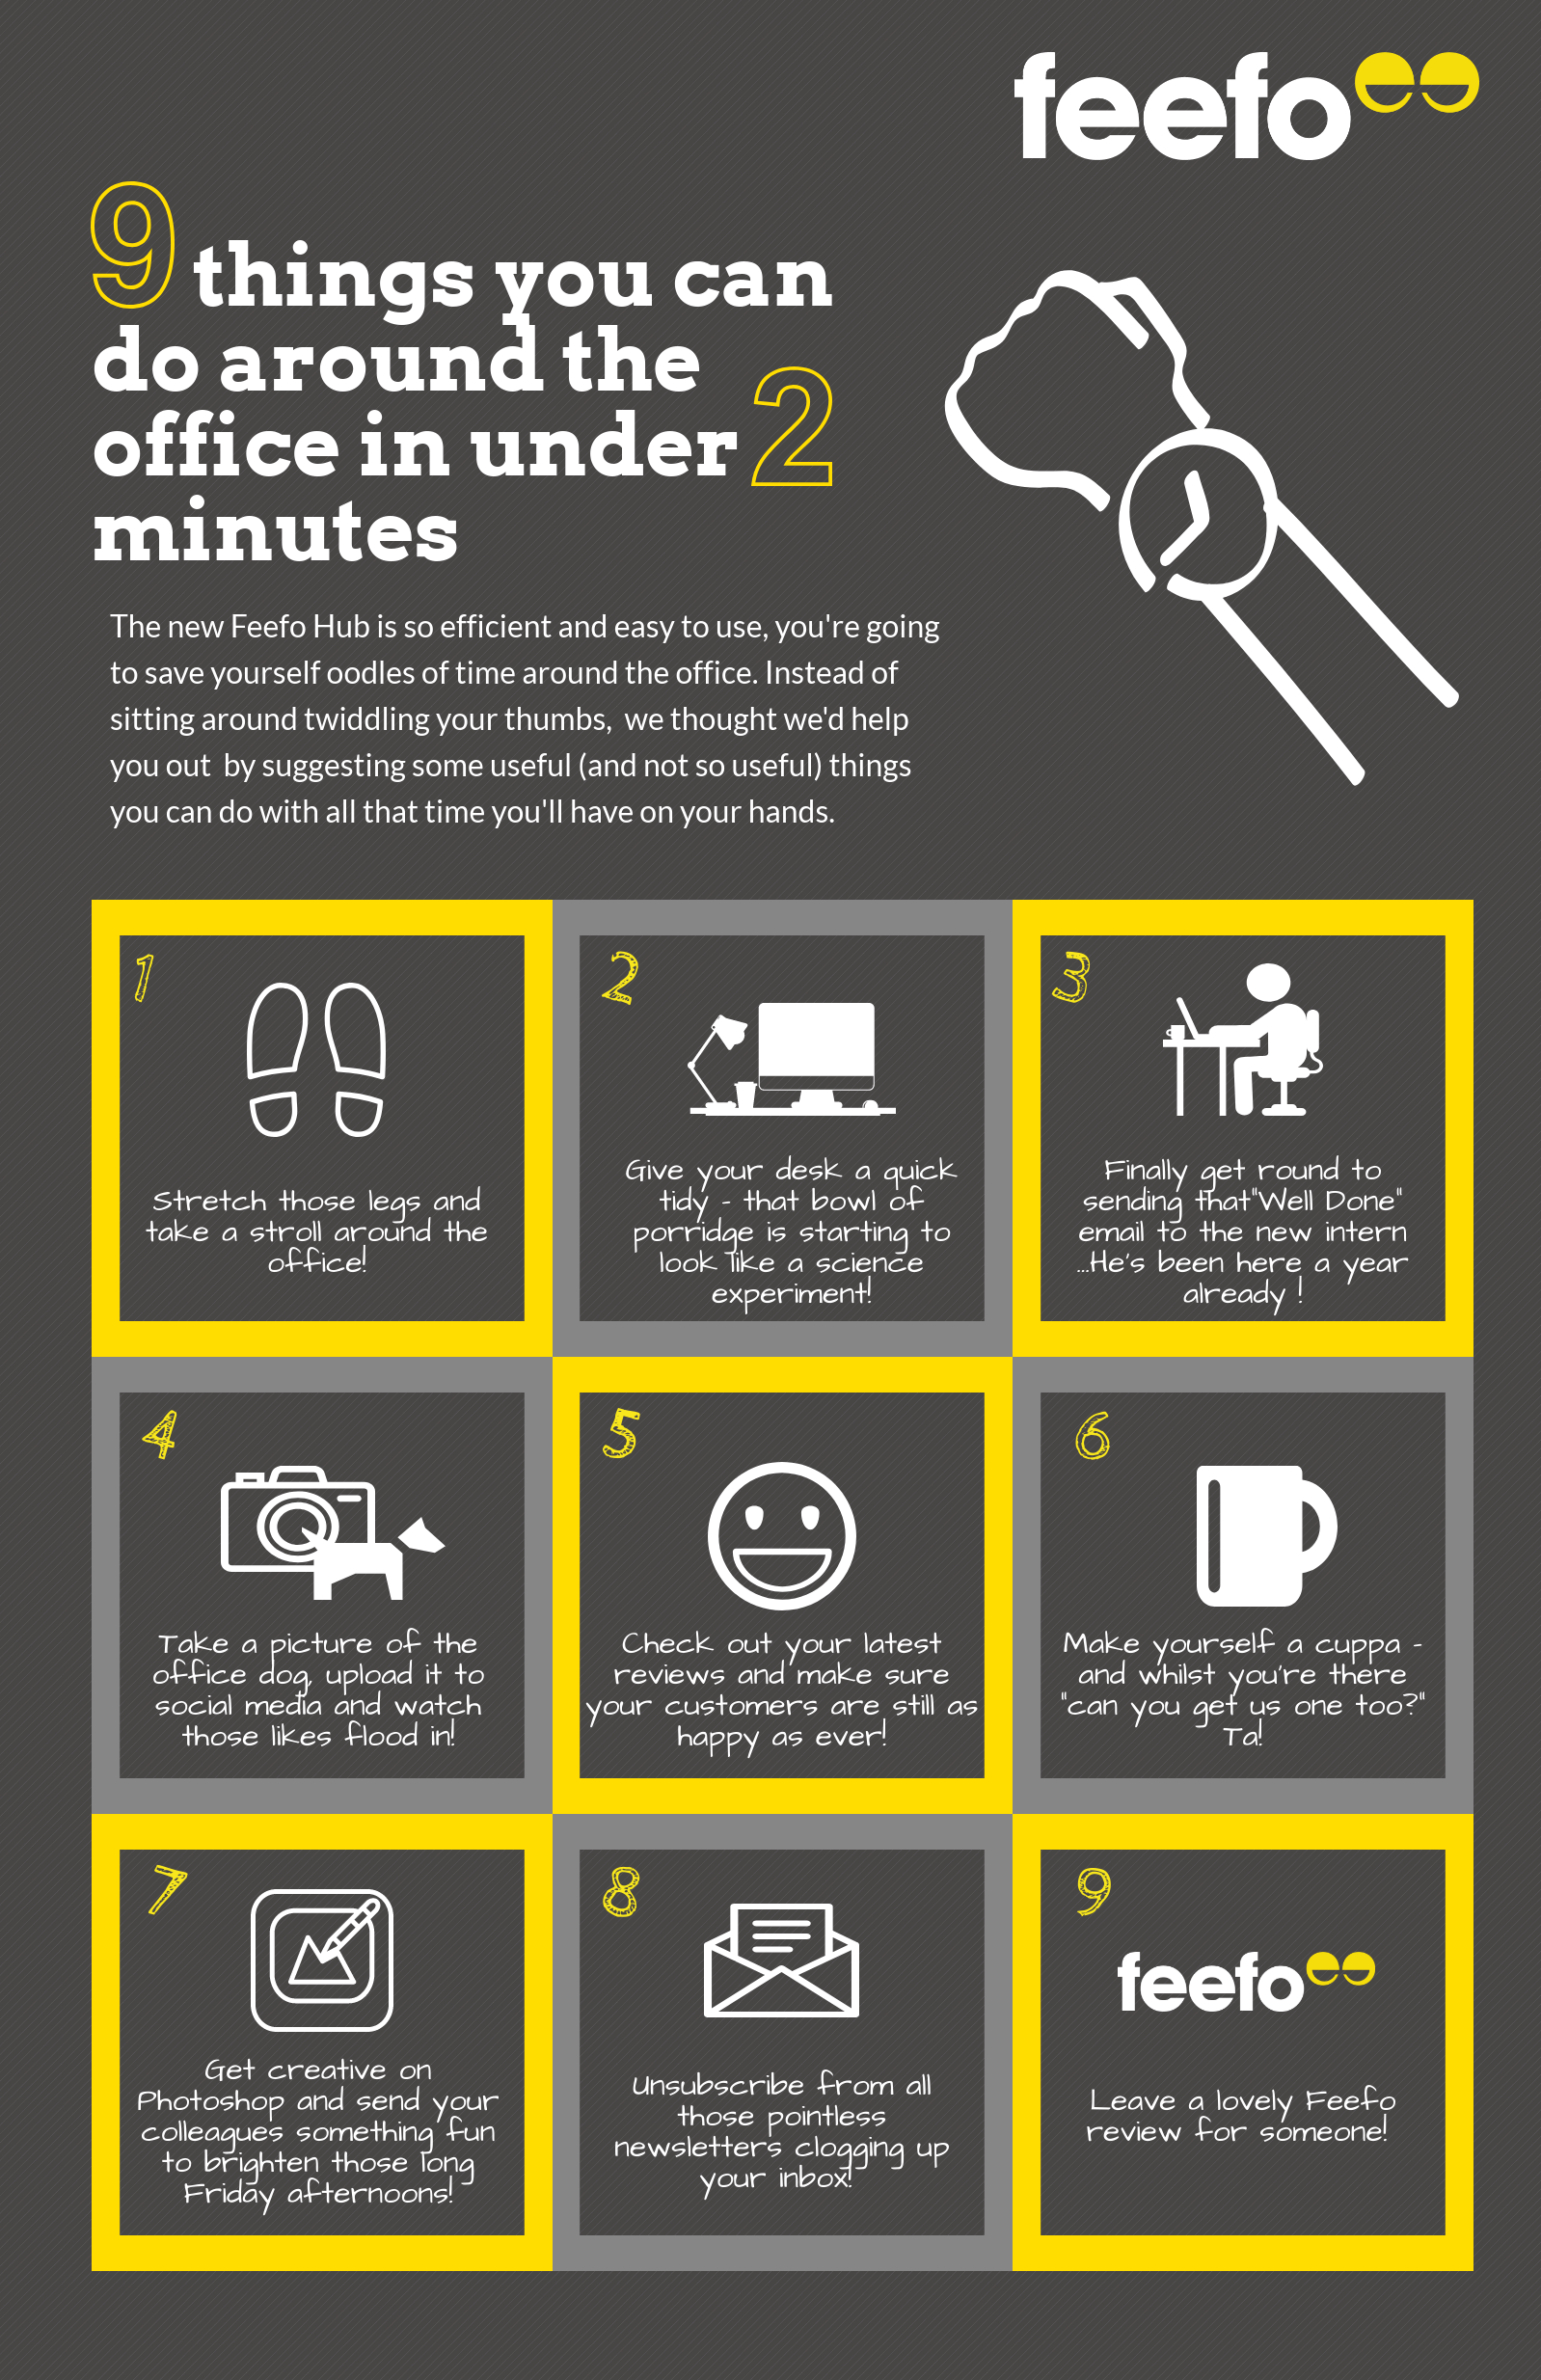 9 things you can do in under 2 minutes